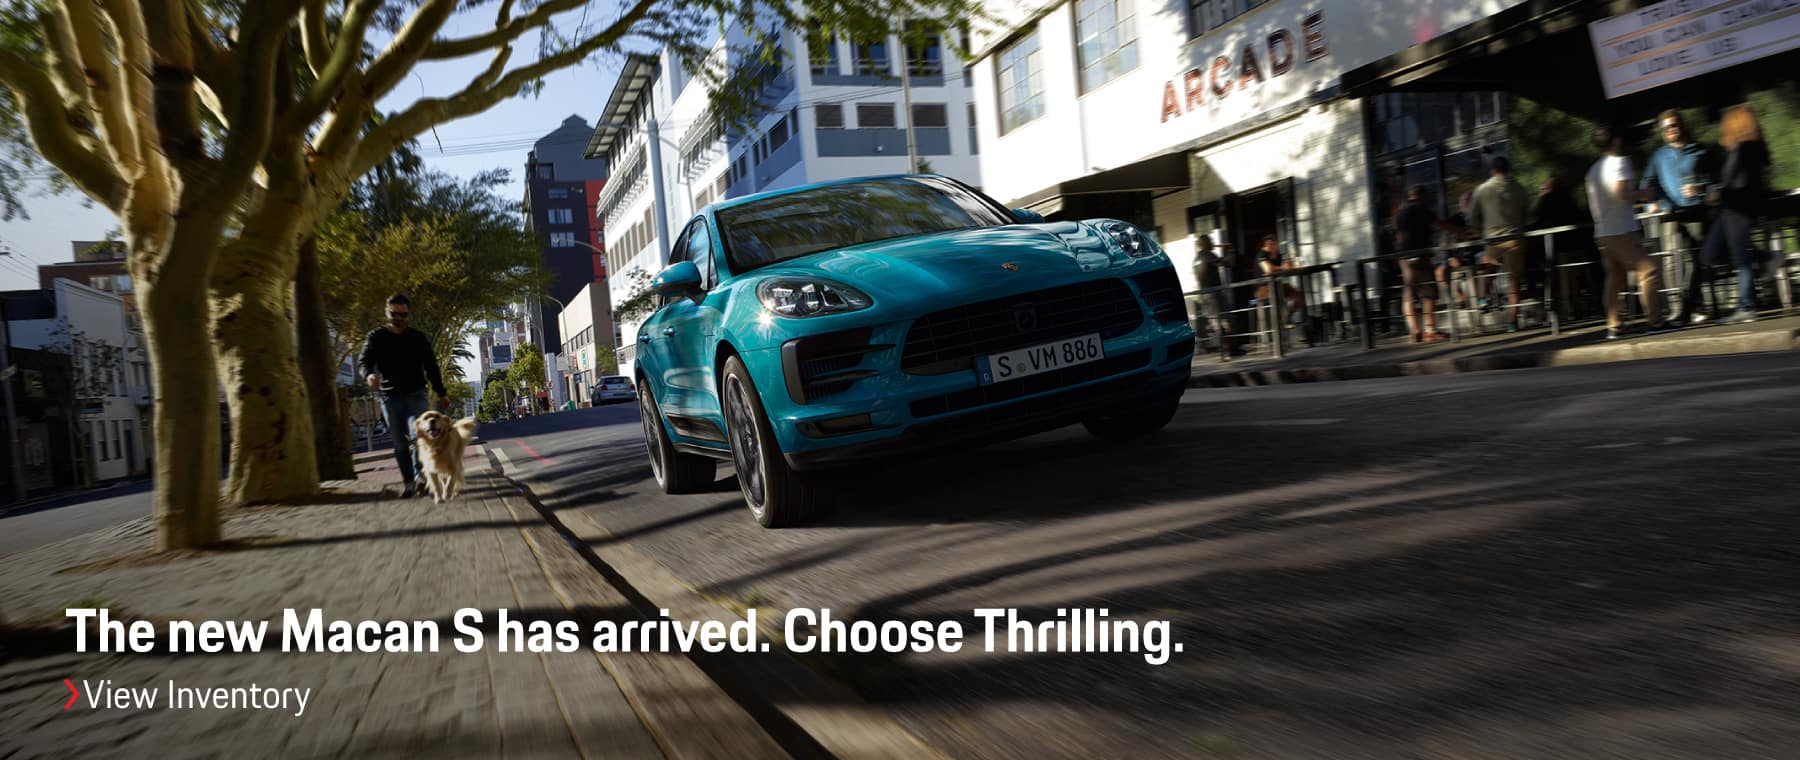 Macan S has arrived